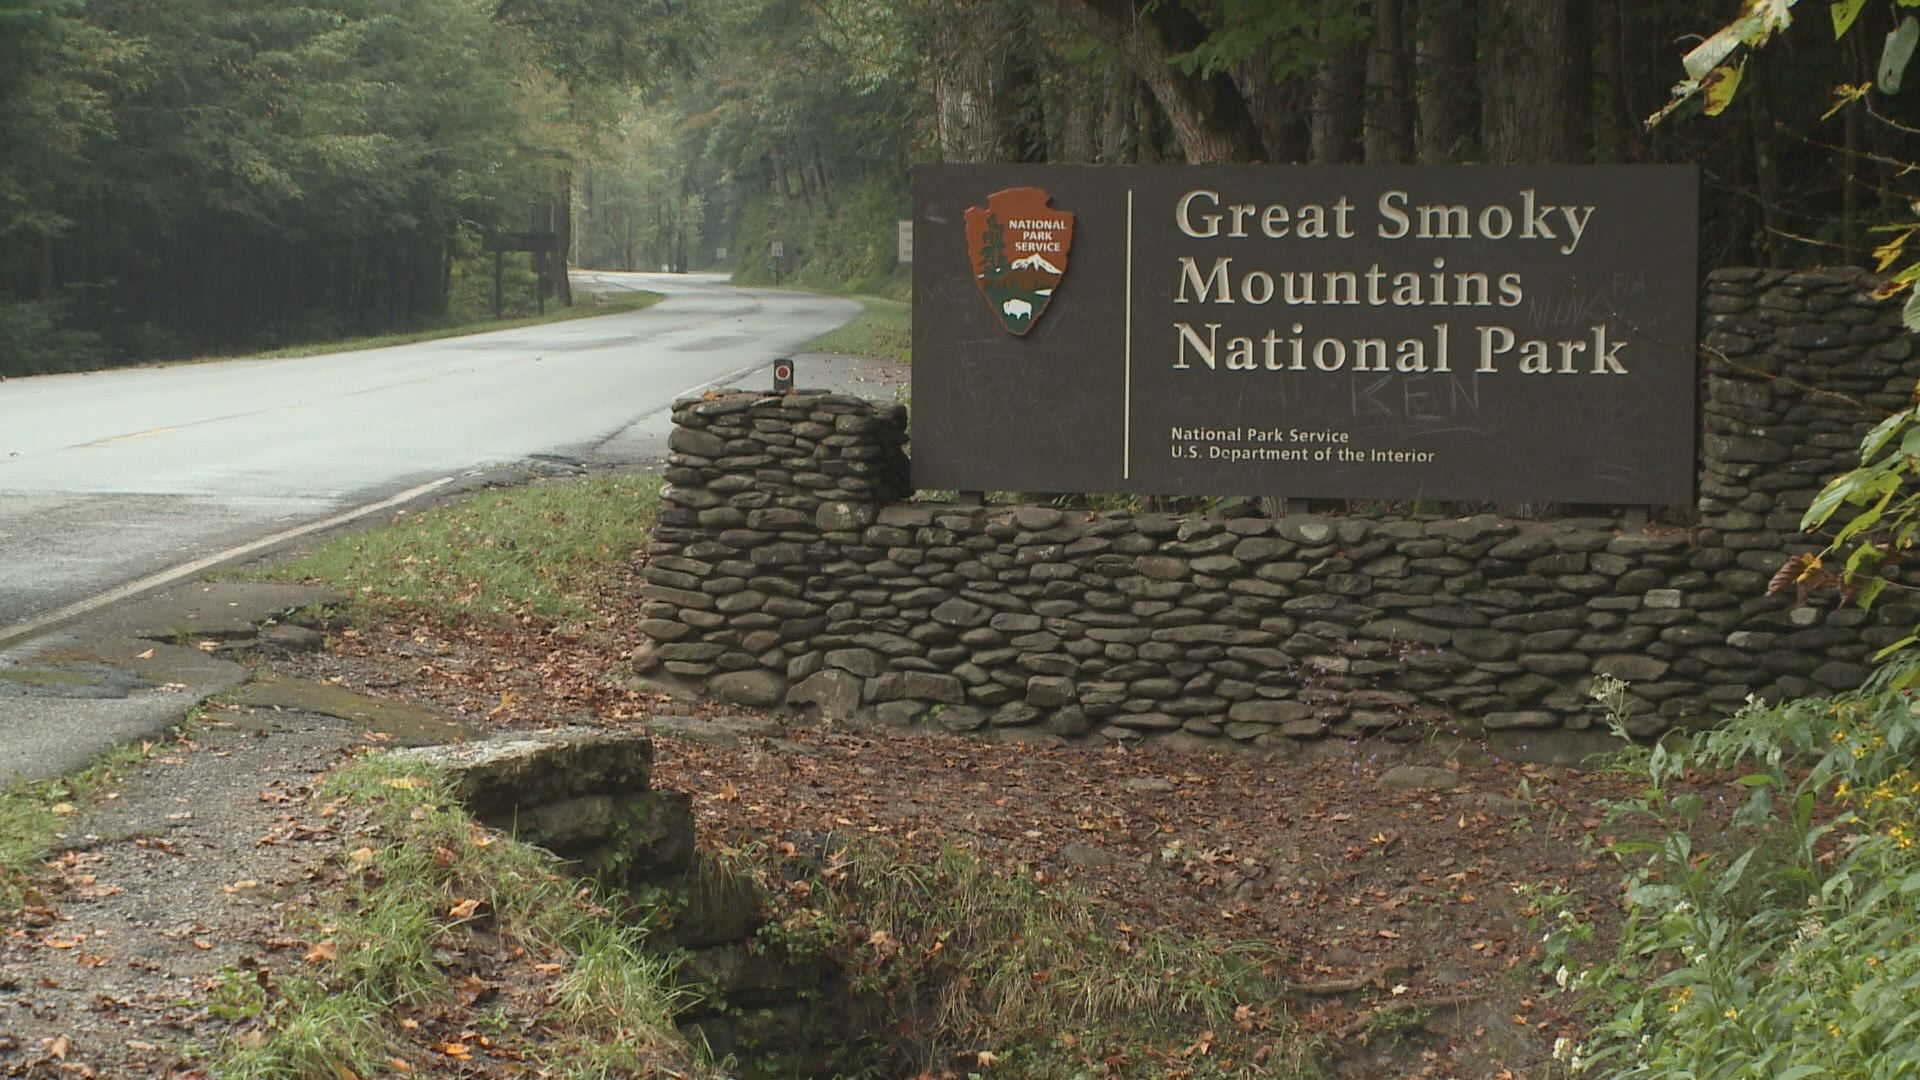 Top 10 Simple Facts About the Smoky Mountains for Outdoor ...